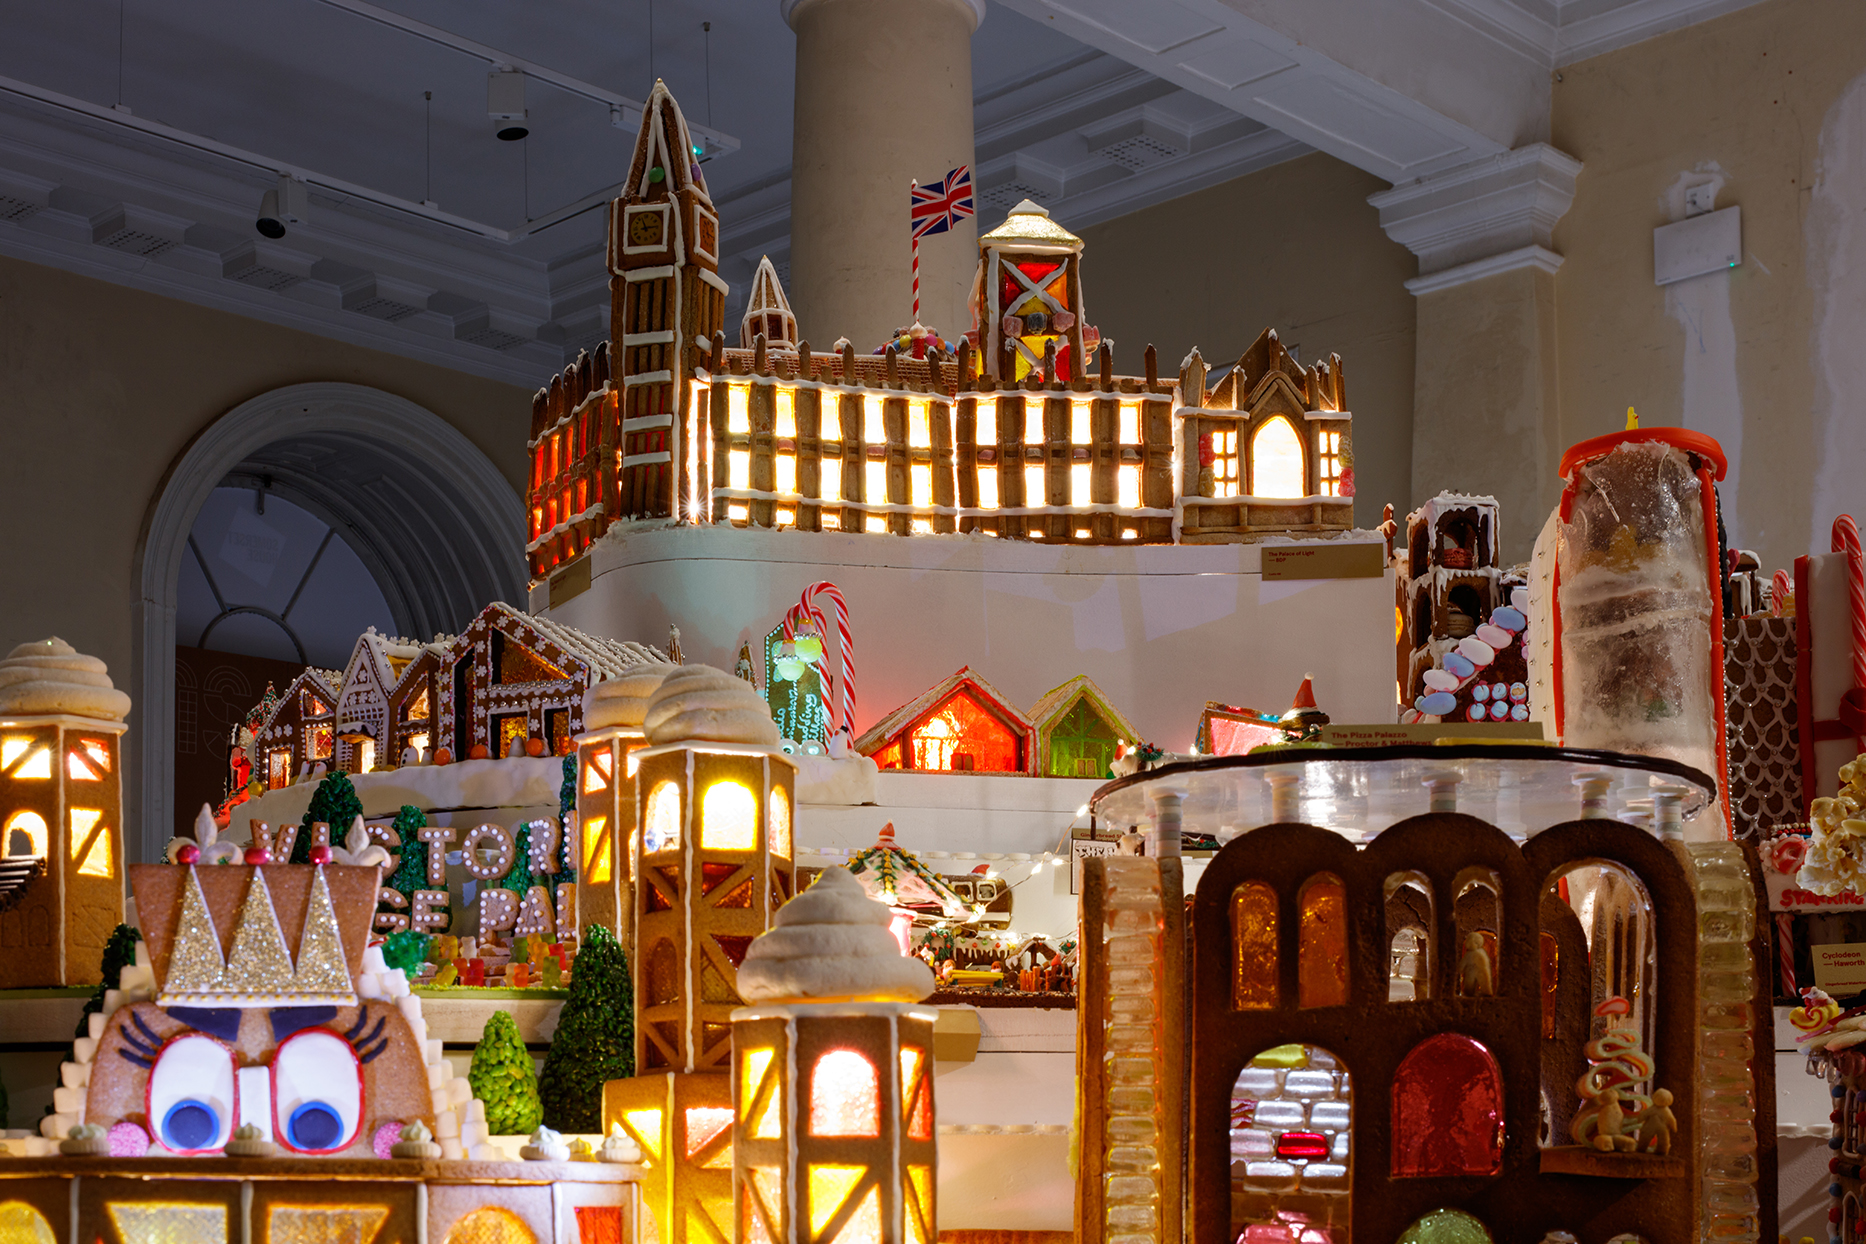 Feast Your Eyes on This Miniature City Made Entirely of Gingerbread